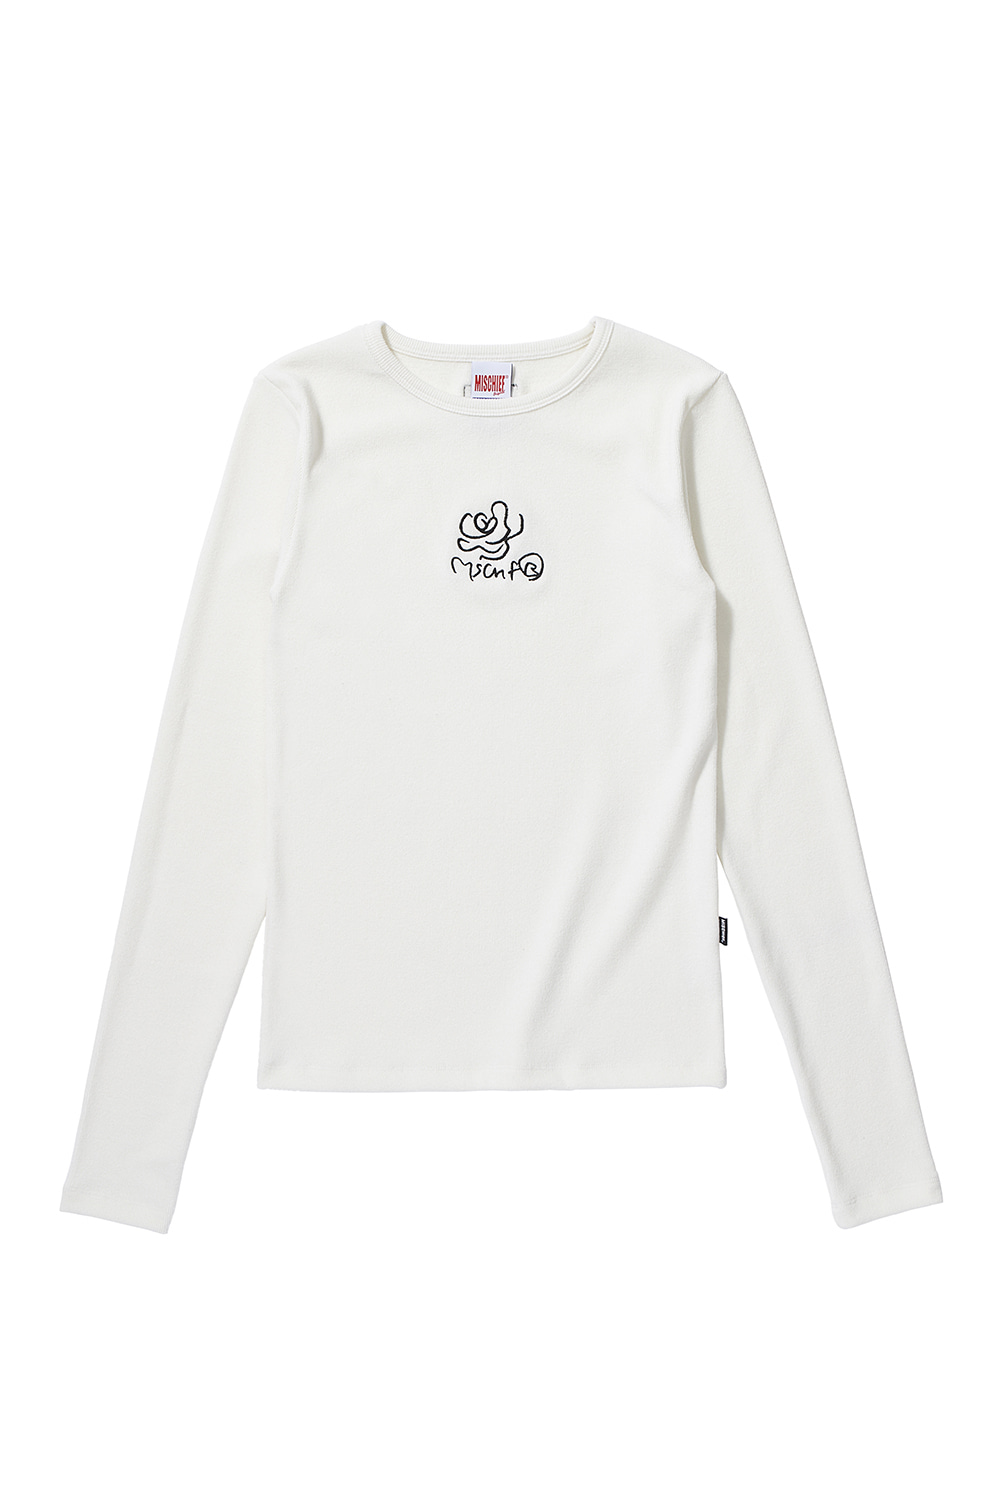 FITTED ROSE LONG SLEEVE_white